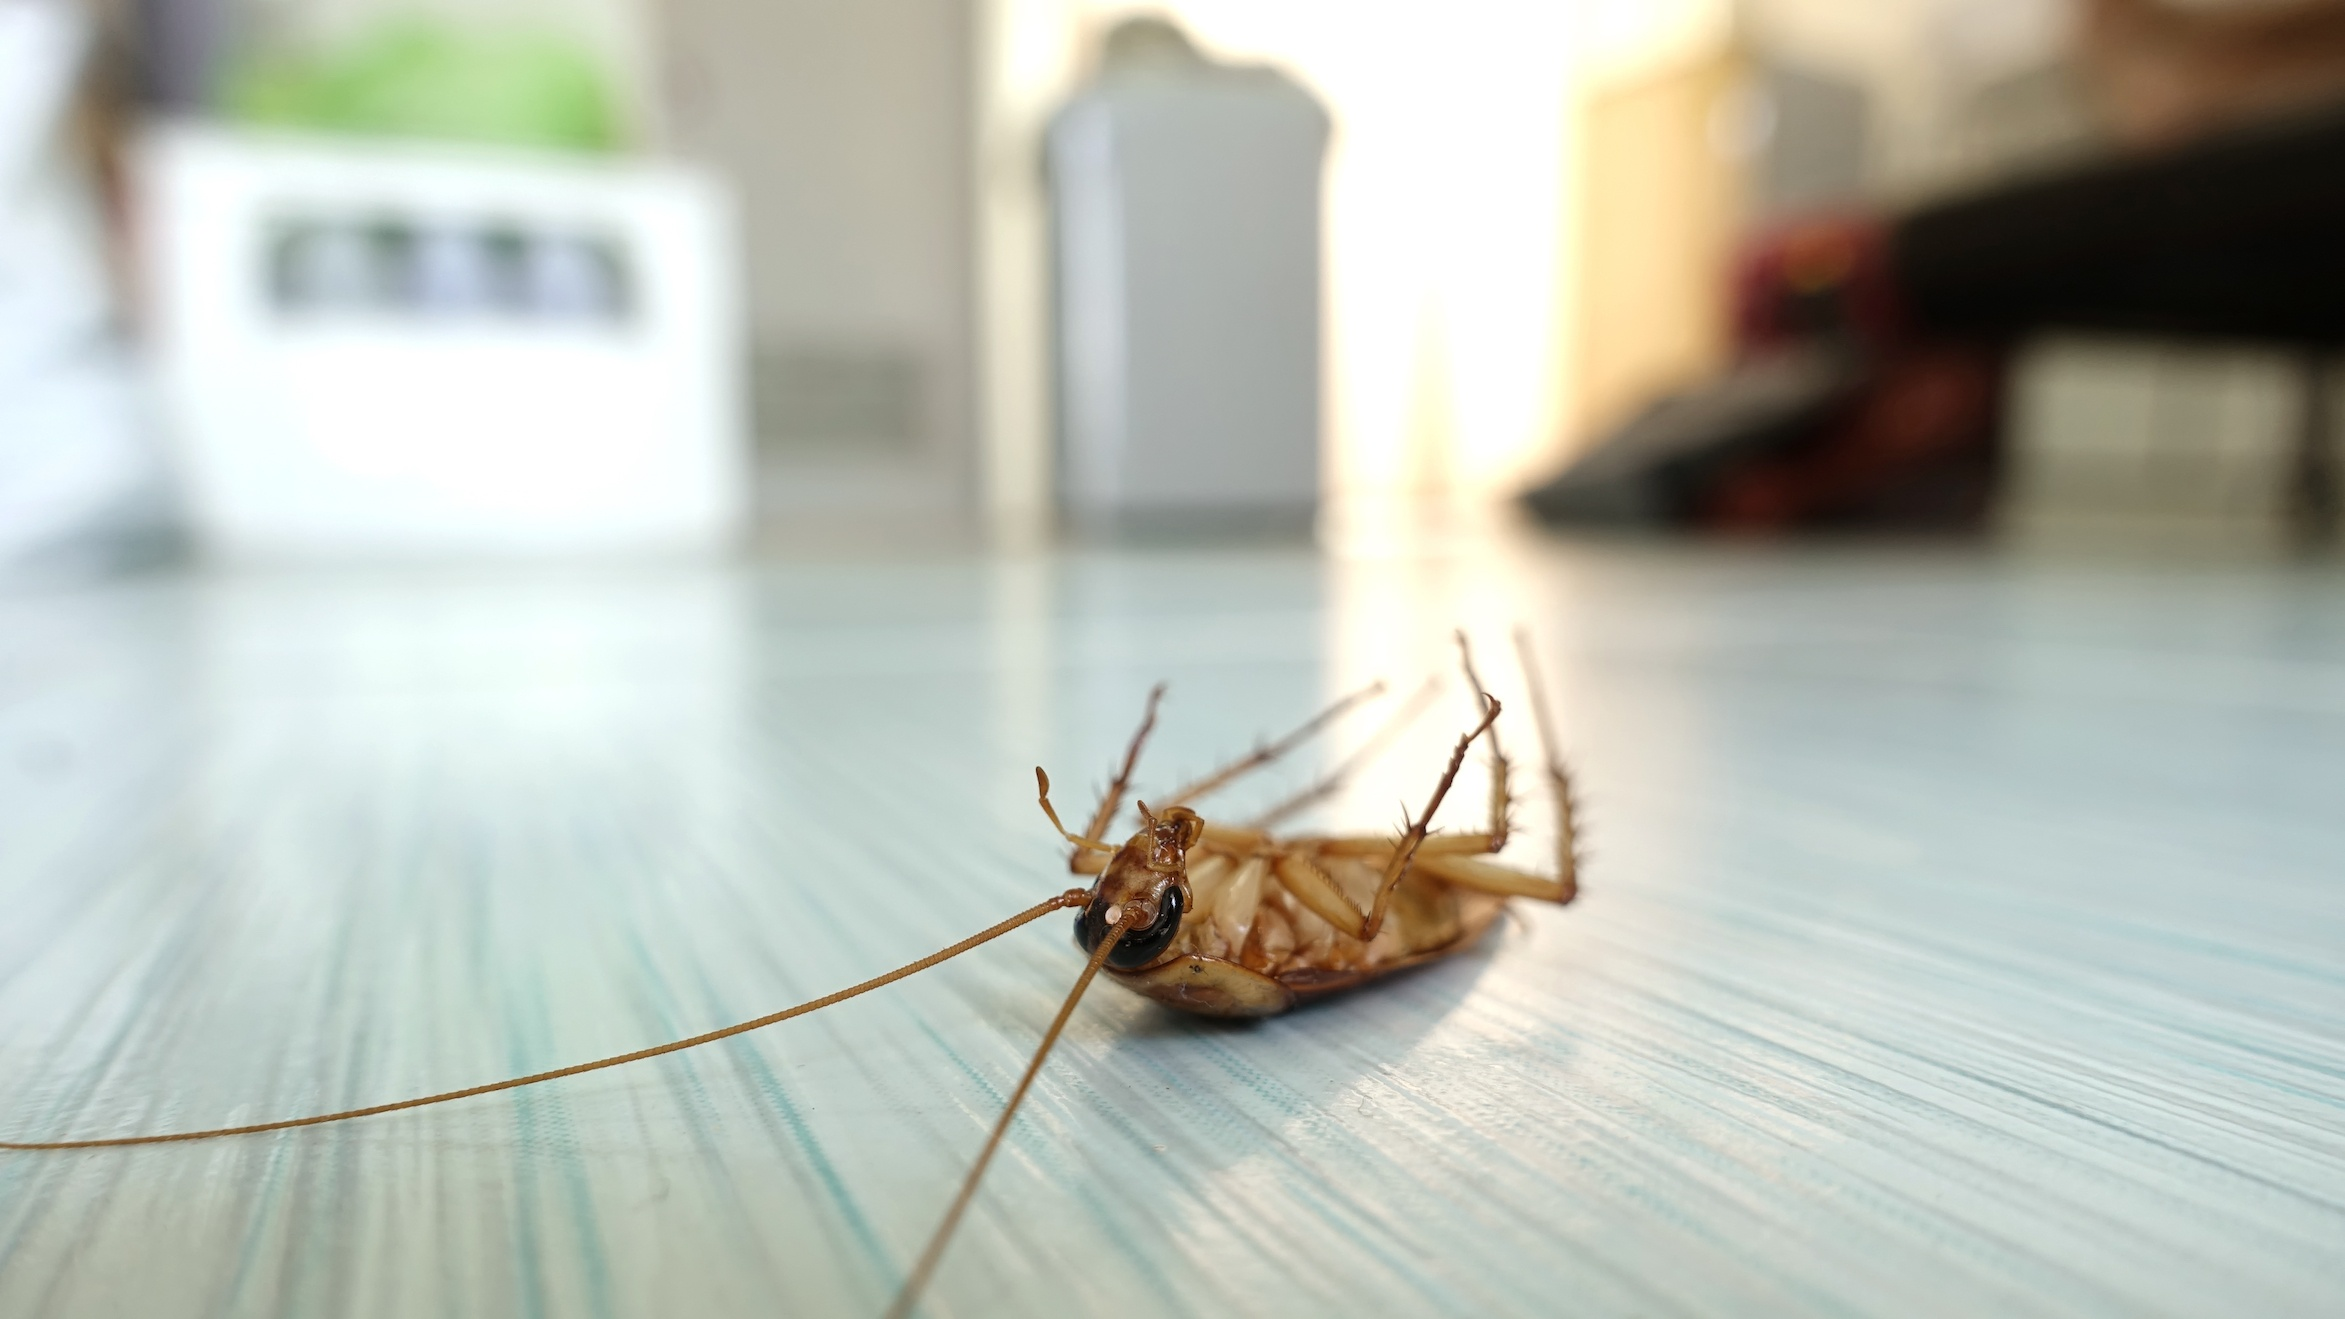 Is There Any Way to Completely Get Rid of Roaches? | San Joaquin Pest Control